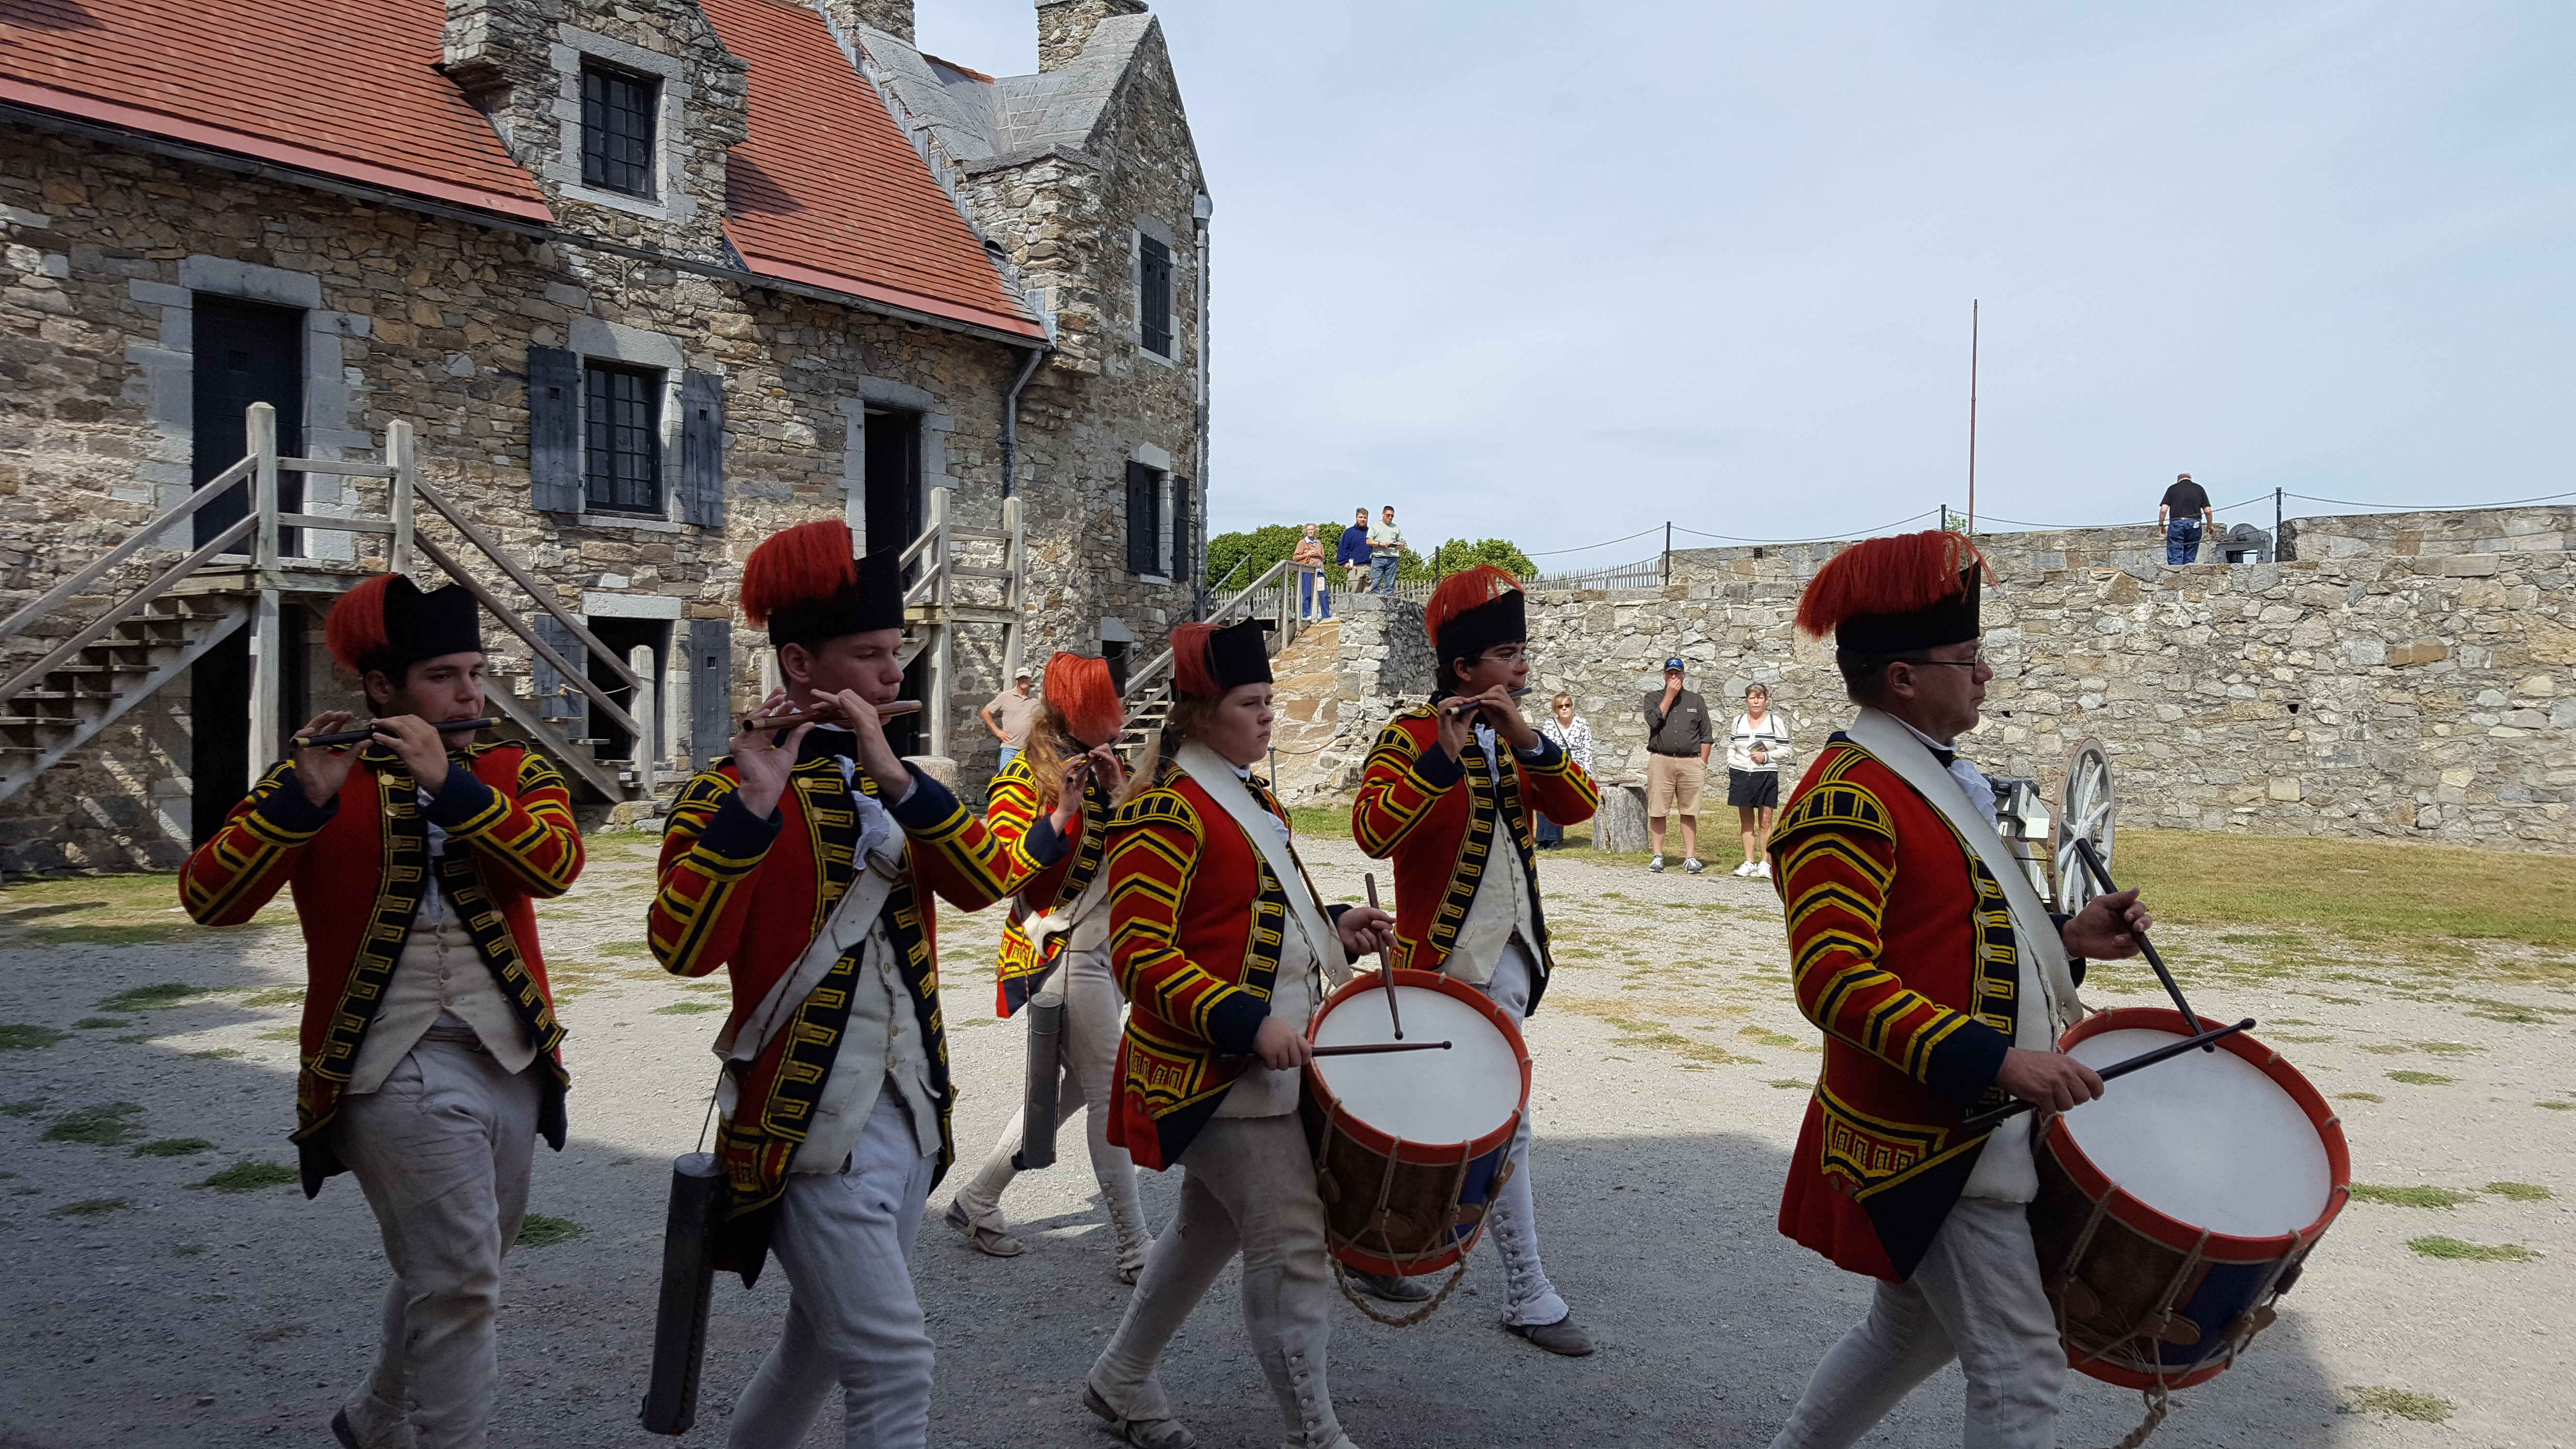 A Day Visit to Fort Ticonderoga